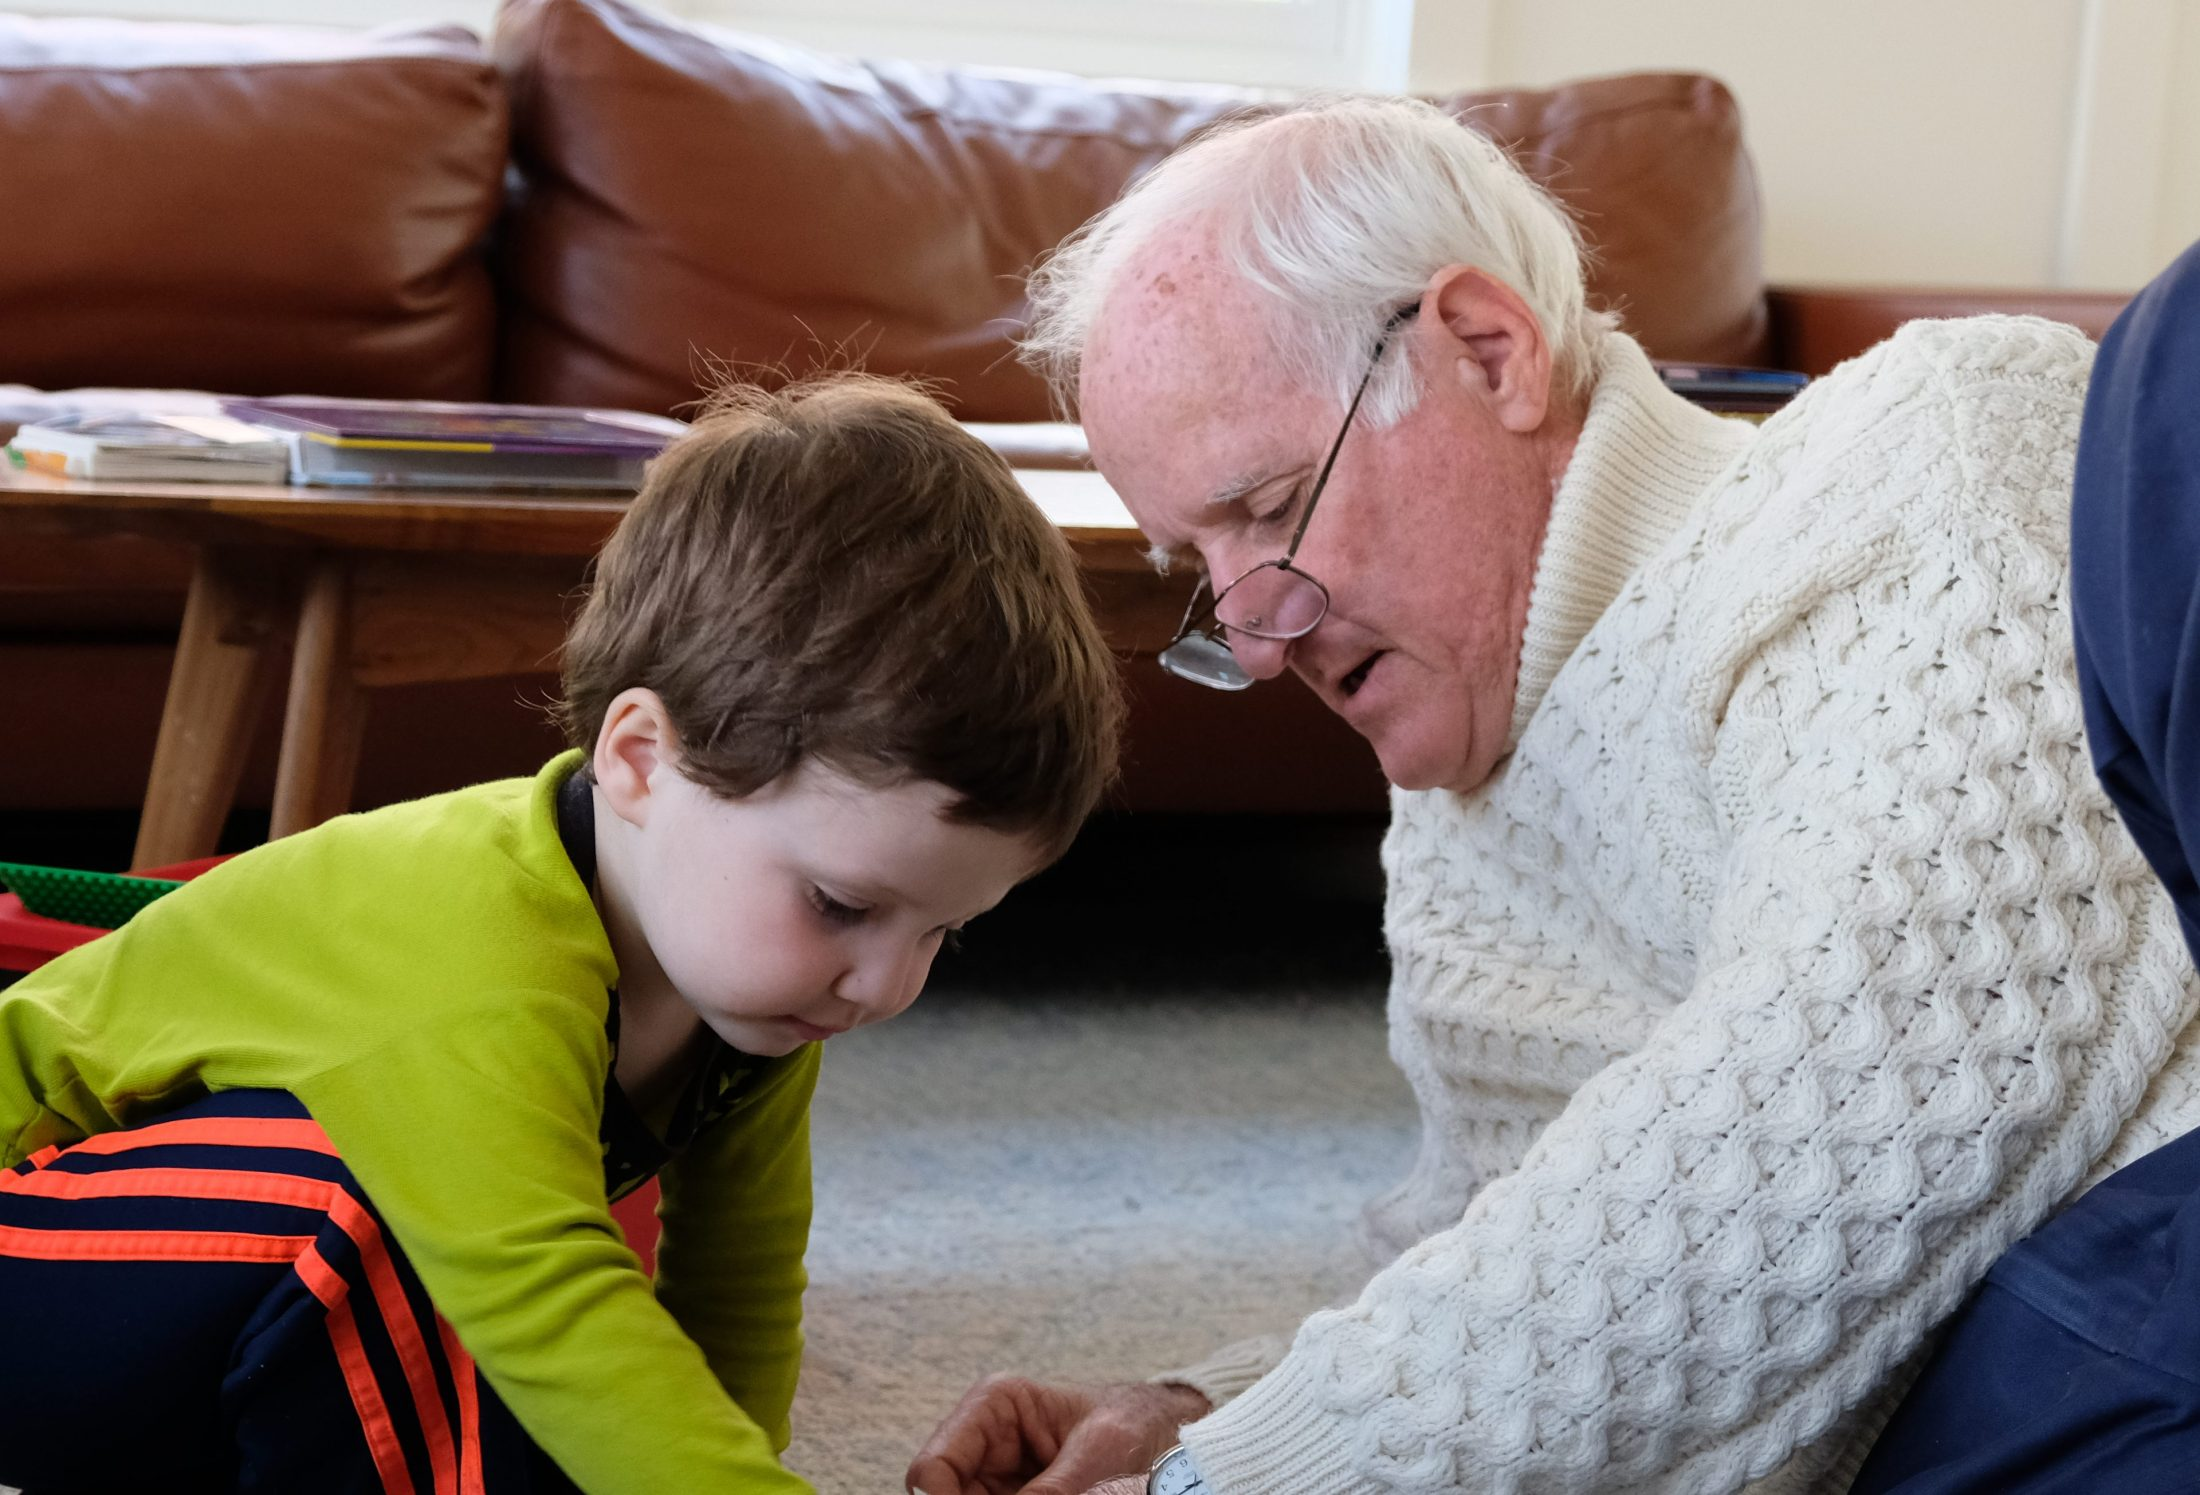 DC widow blog writer Marjorie Brimley's father, Tom, plays legos with her son Tommy